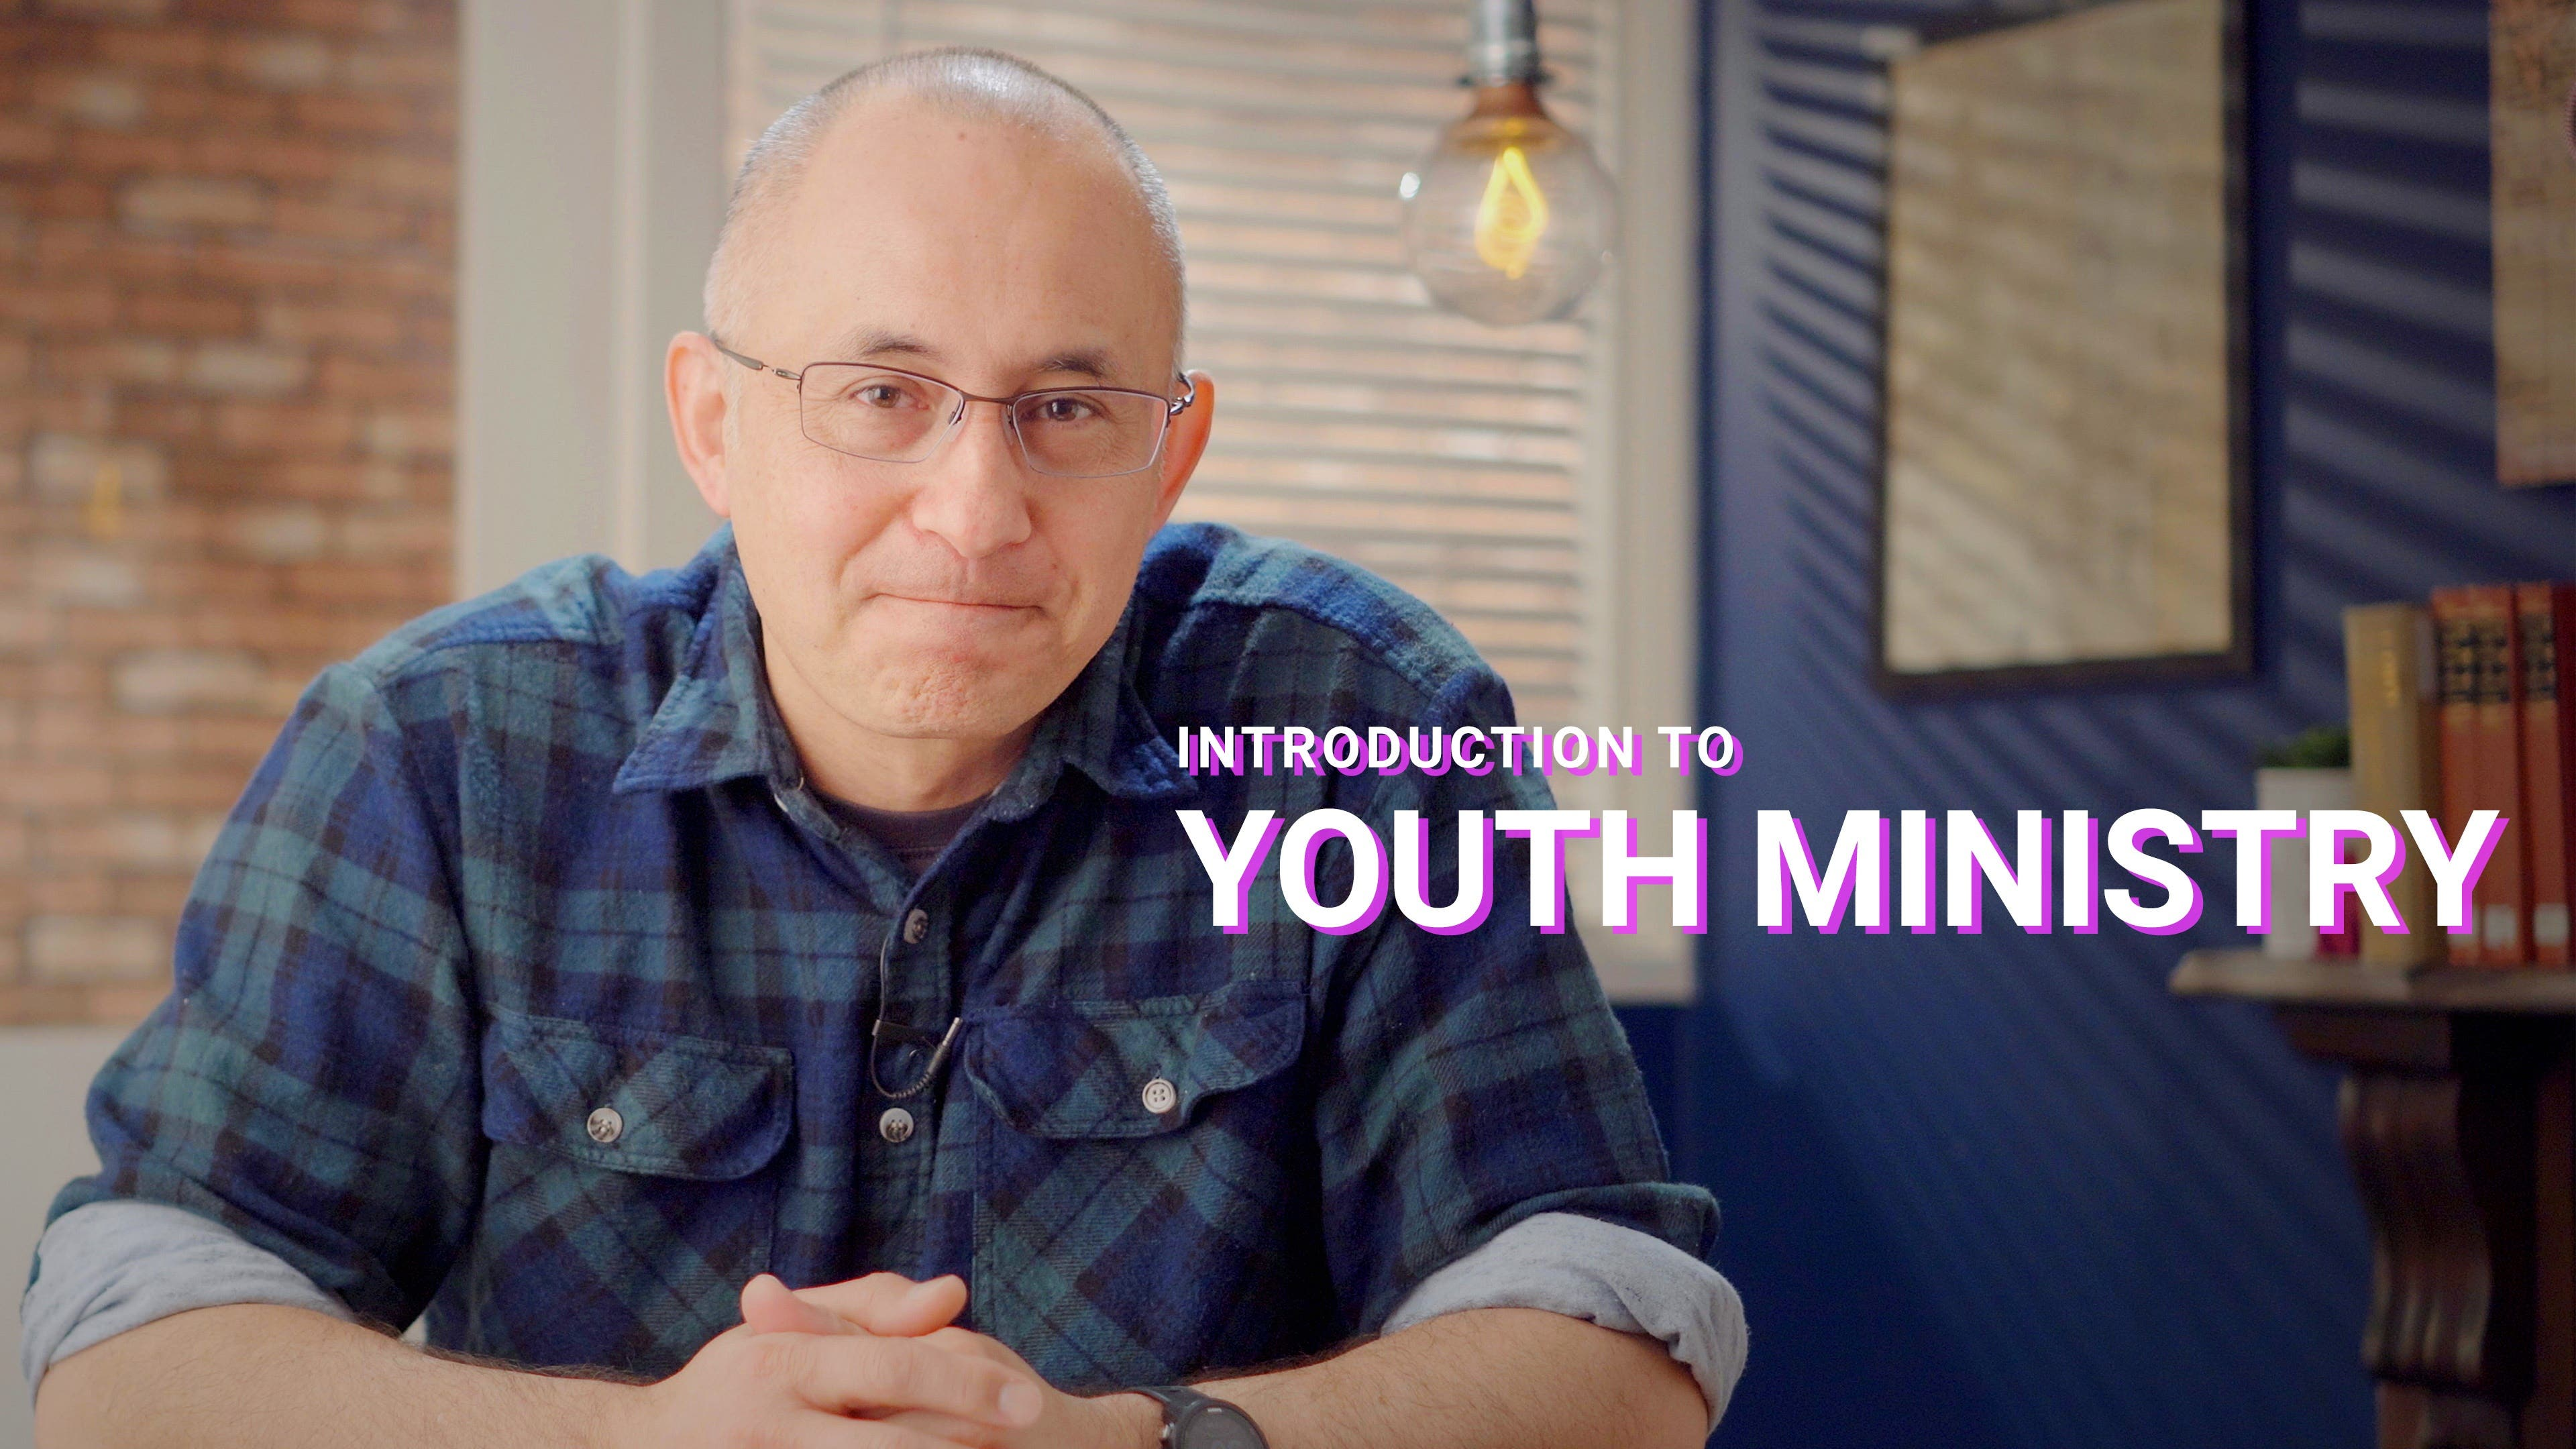 Introduction to Youth Ministry